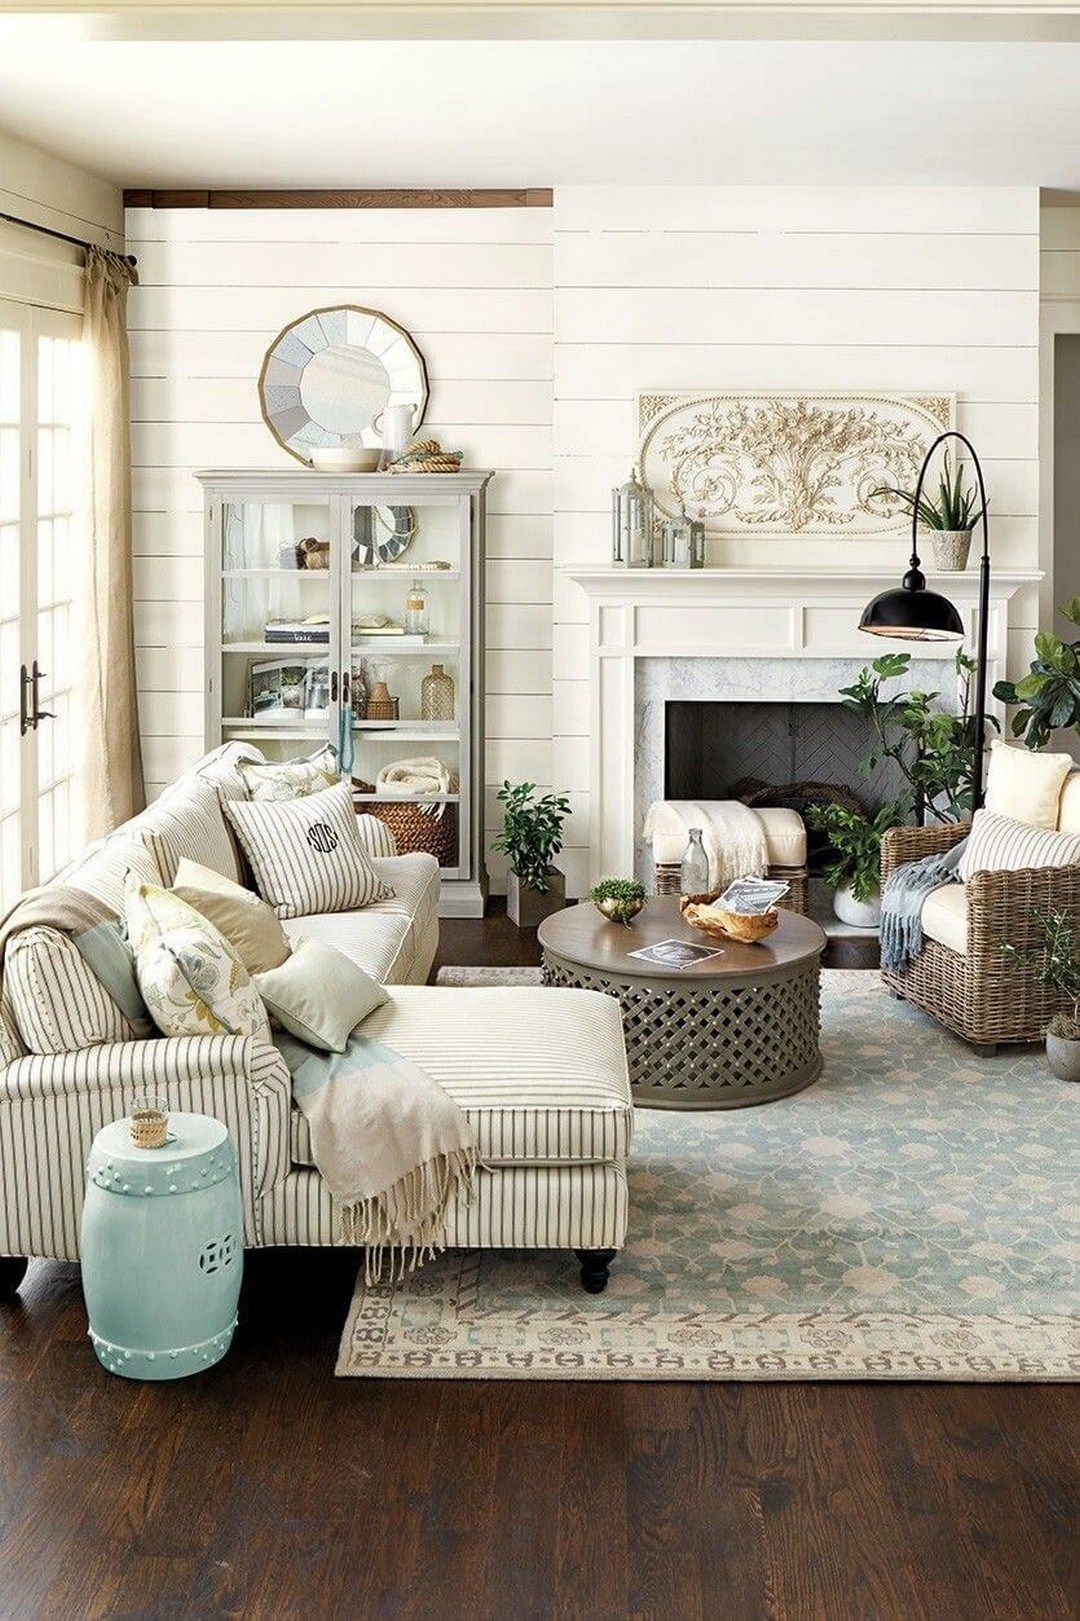 50 Beautiful French Country Living Room You Should Try | French ...